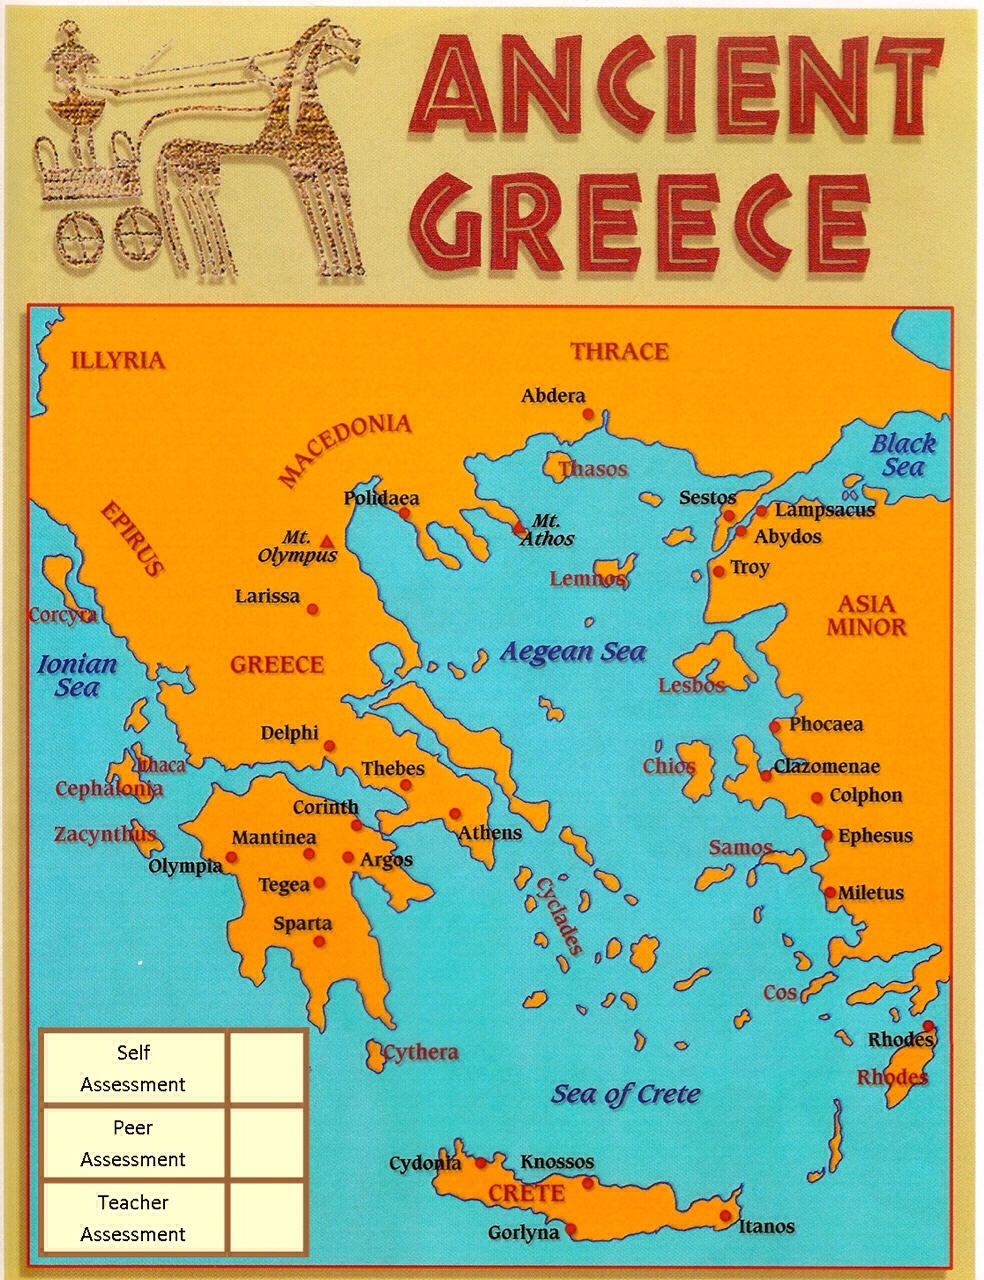 Ancient Greece - an interactive map on the sirens odysseus, map of ithaca greece, map of ithaca island, map of ulysses journey,